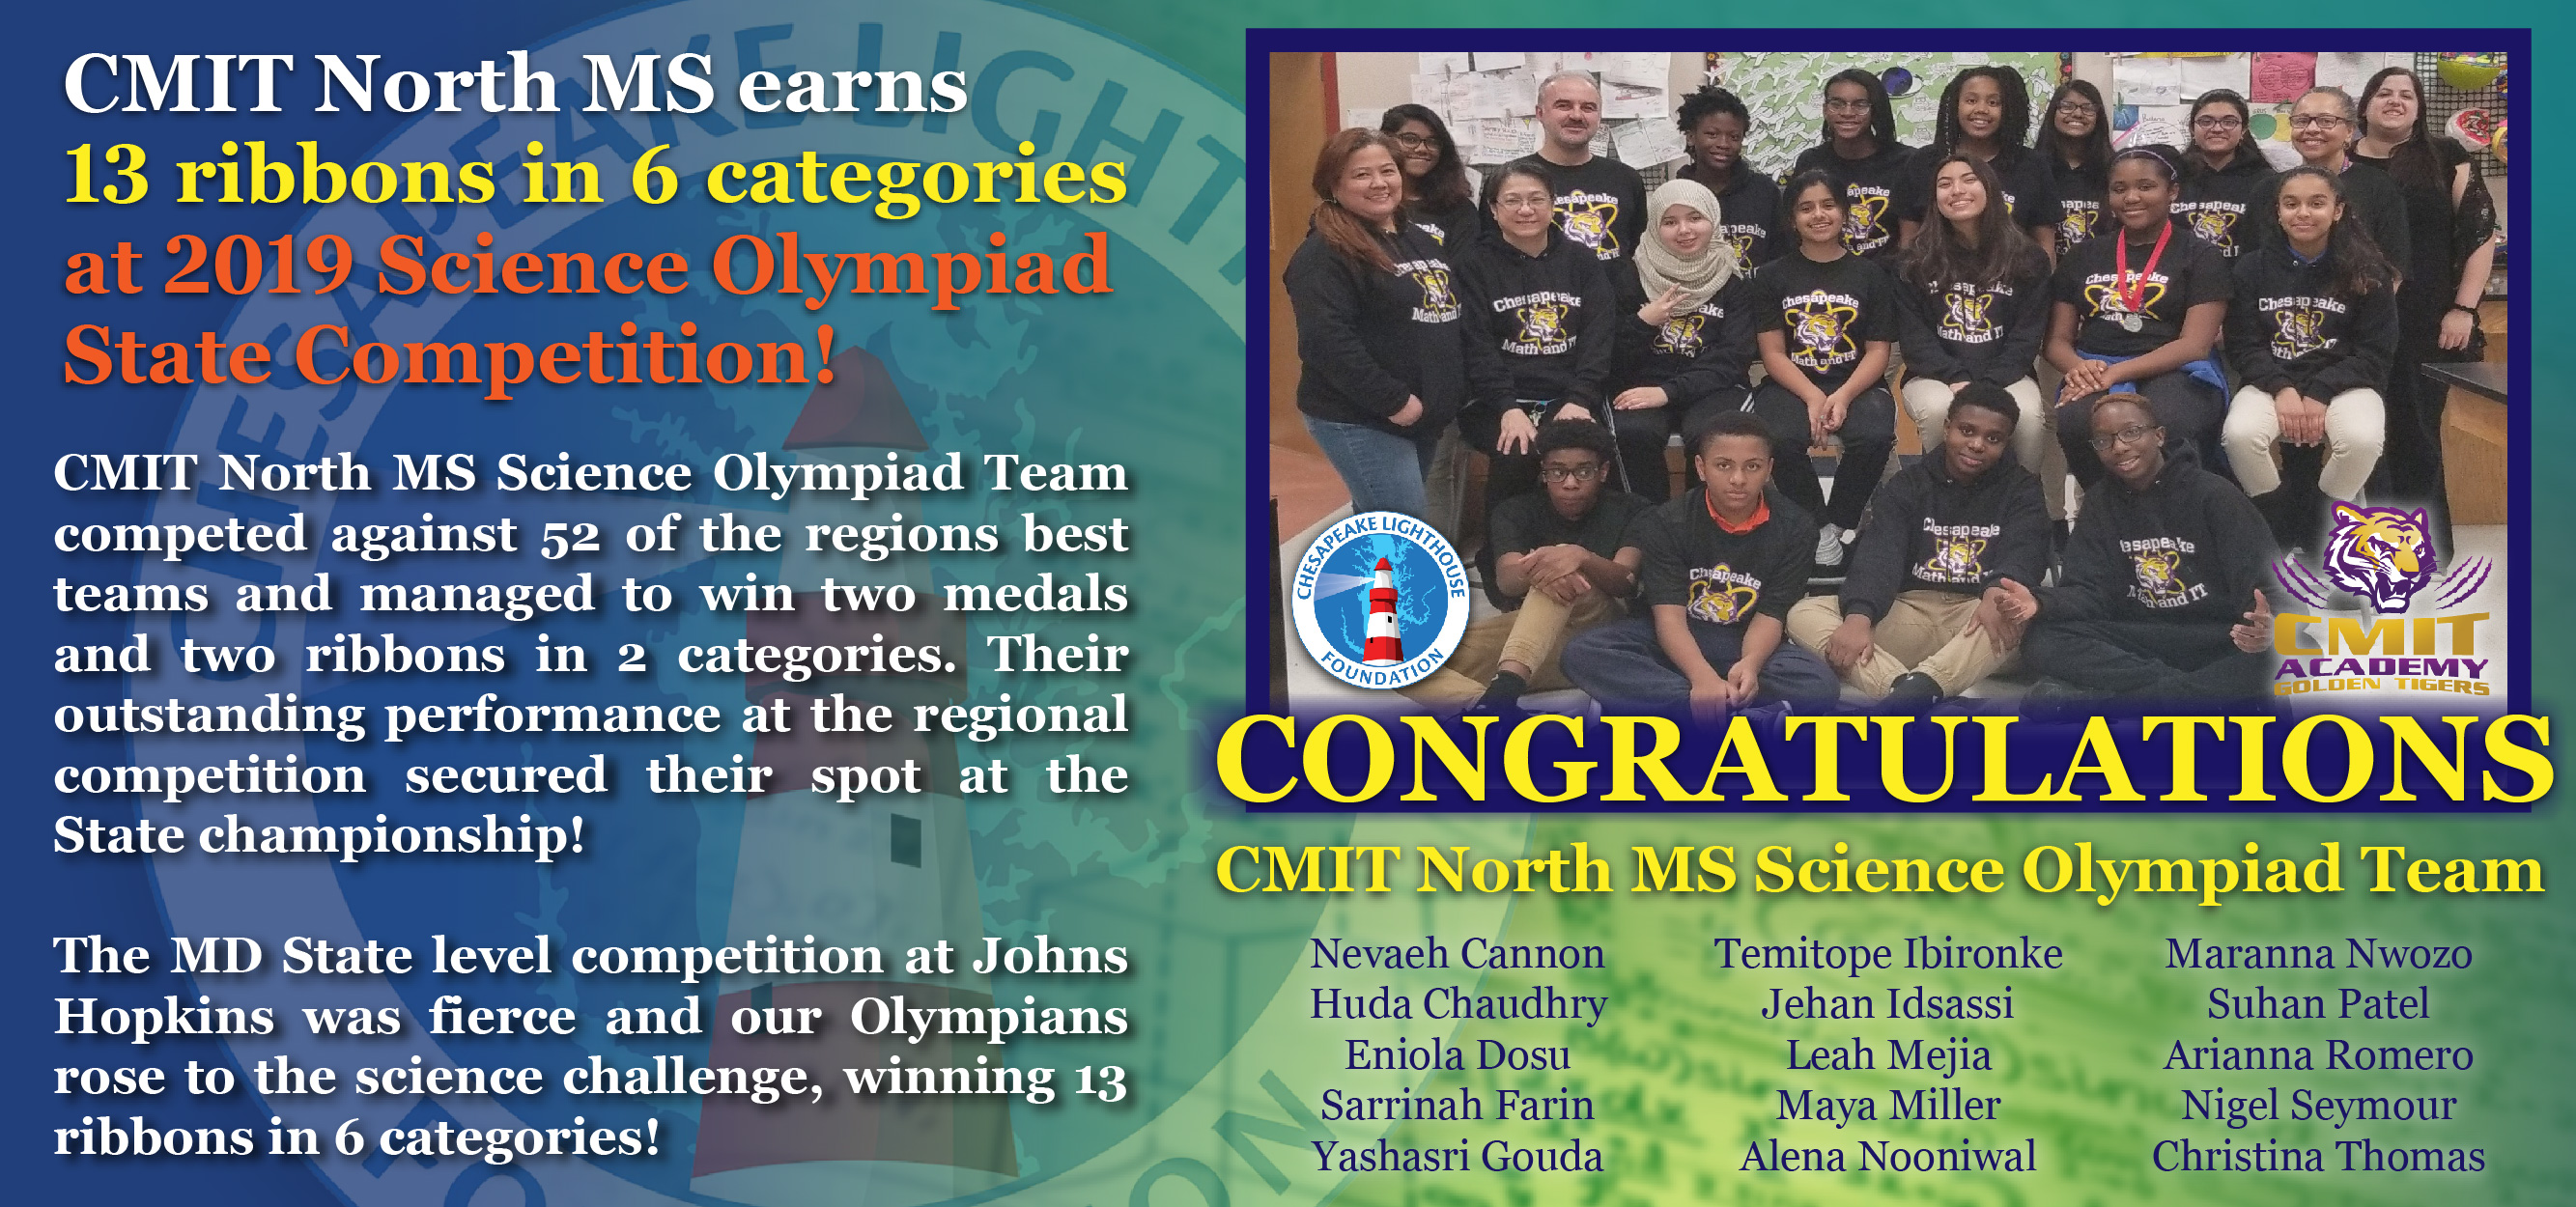 CMIT North MS Earns 13 Ribbons in 6 Categories!